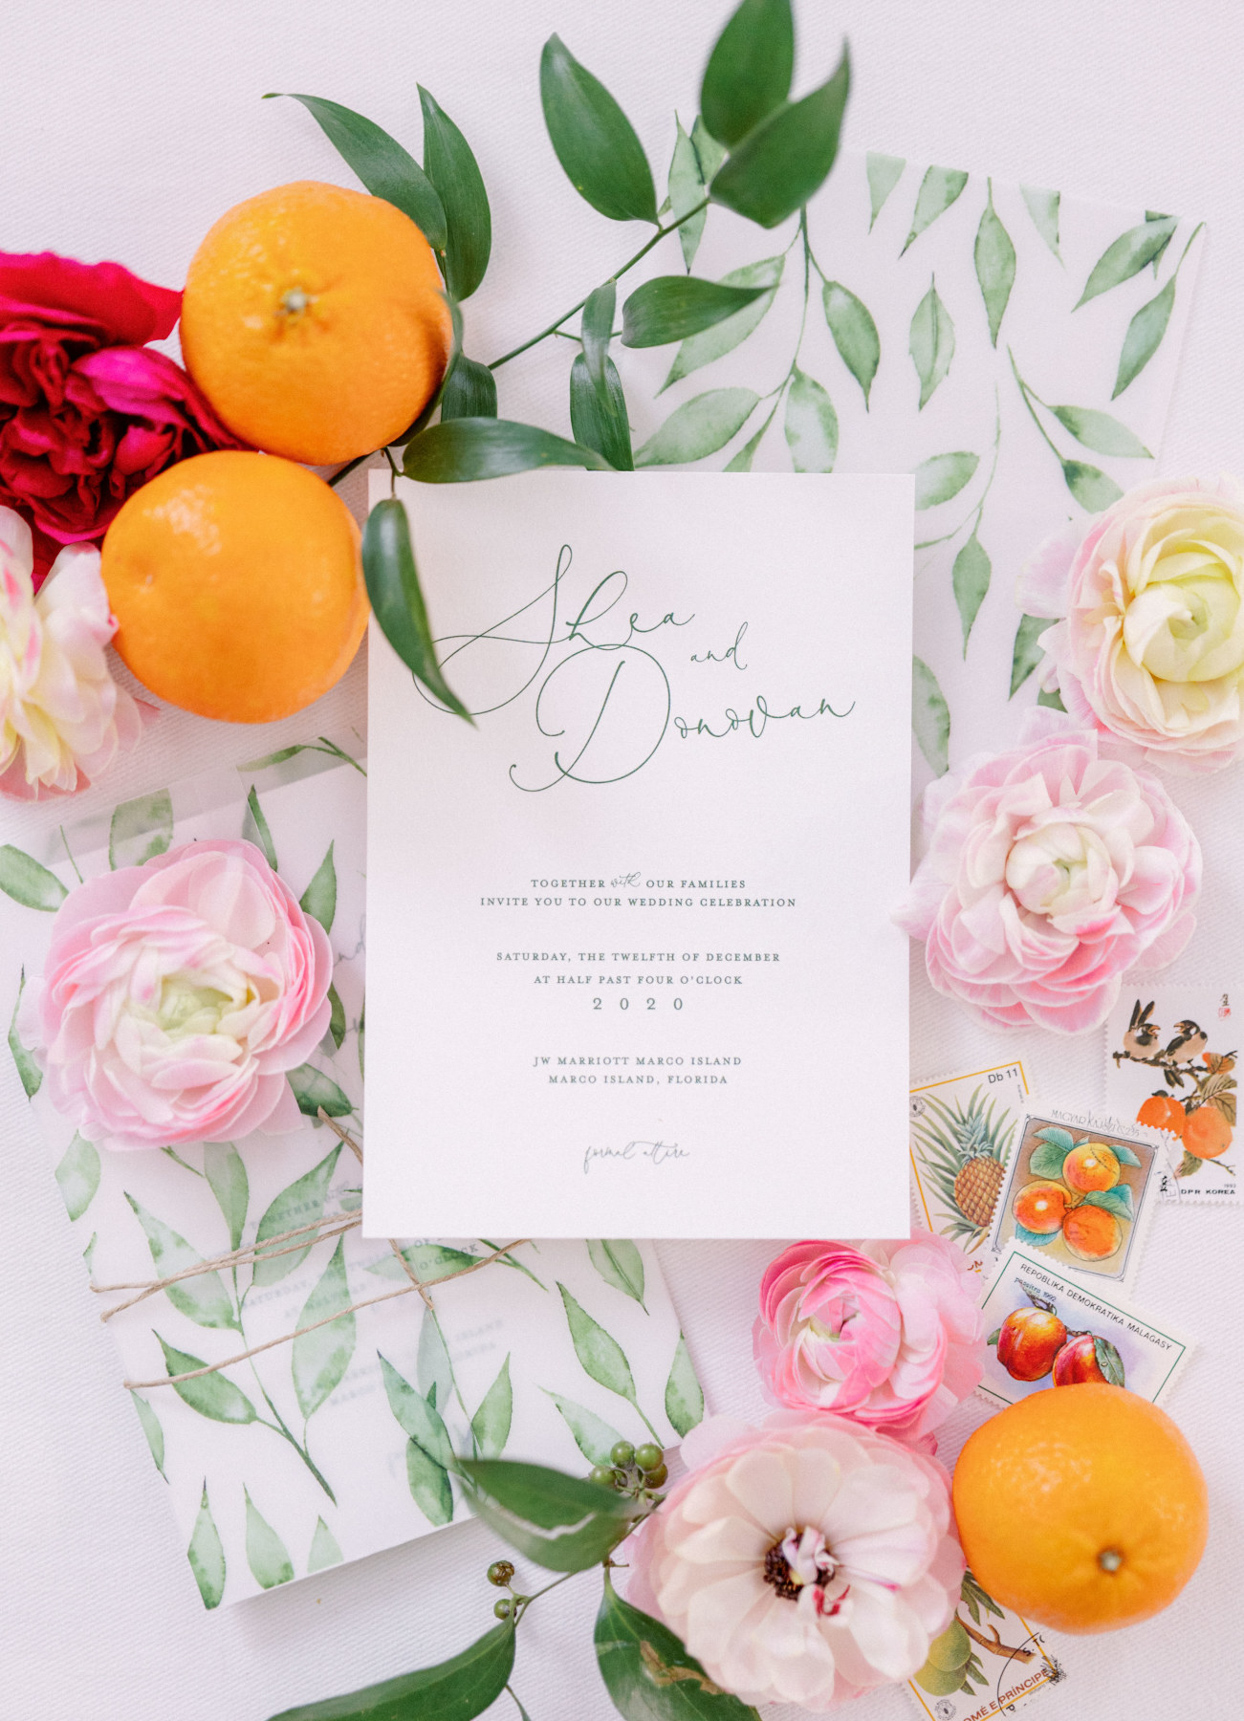 wedding invites with palm-frond green text, a jute tie, and a printed vellum wrap